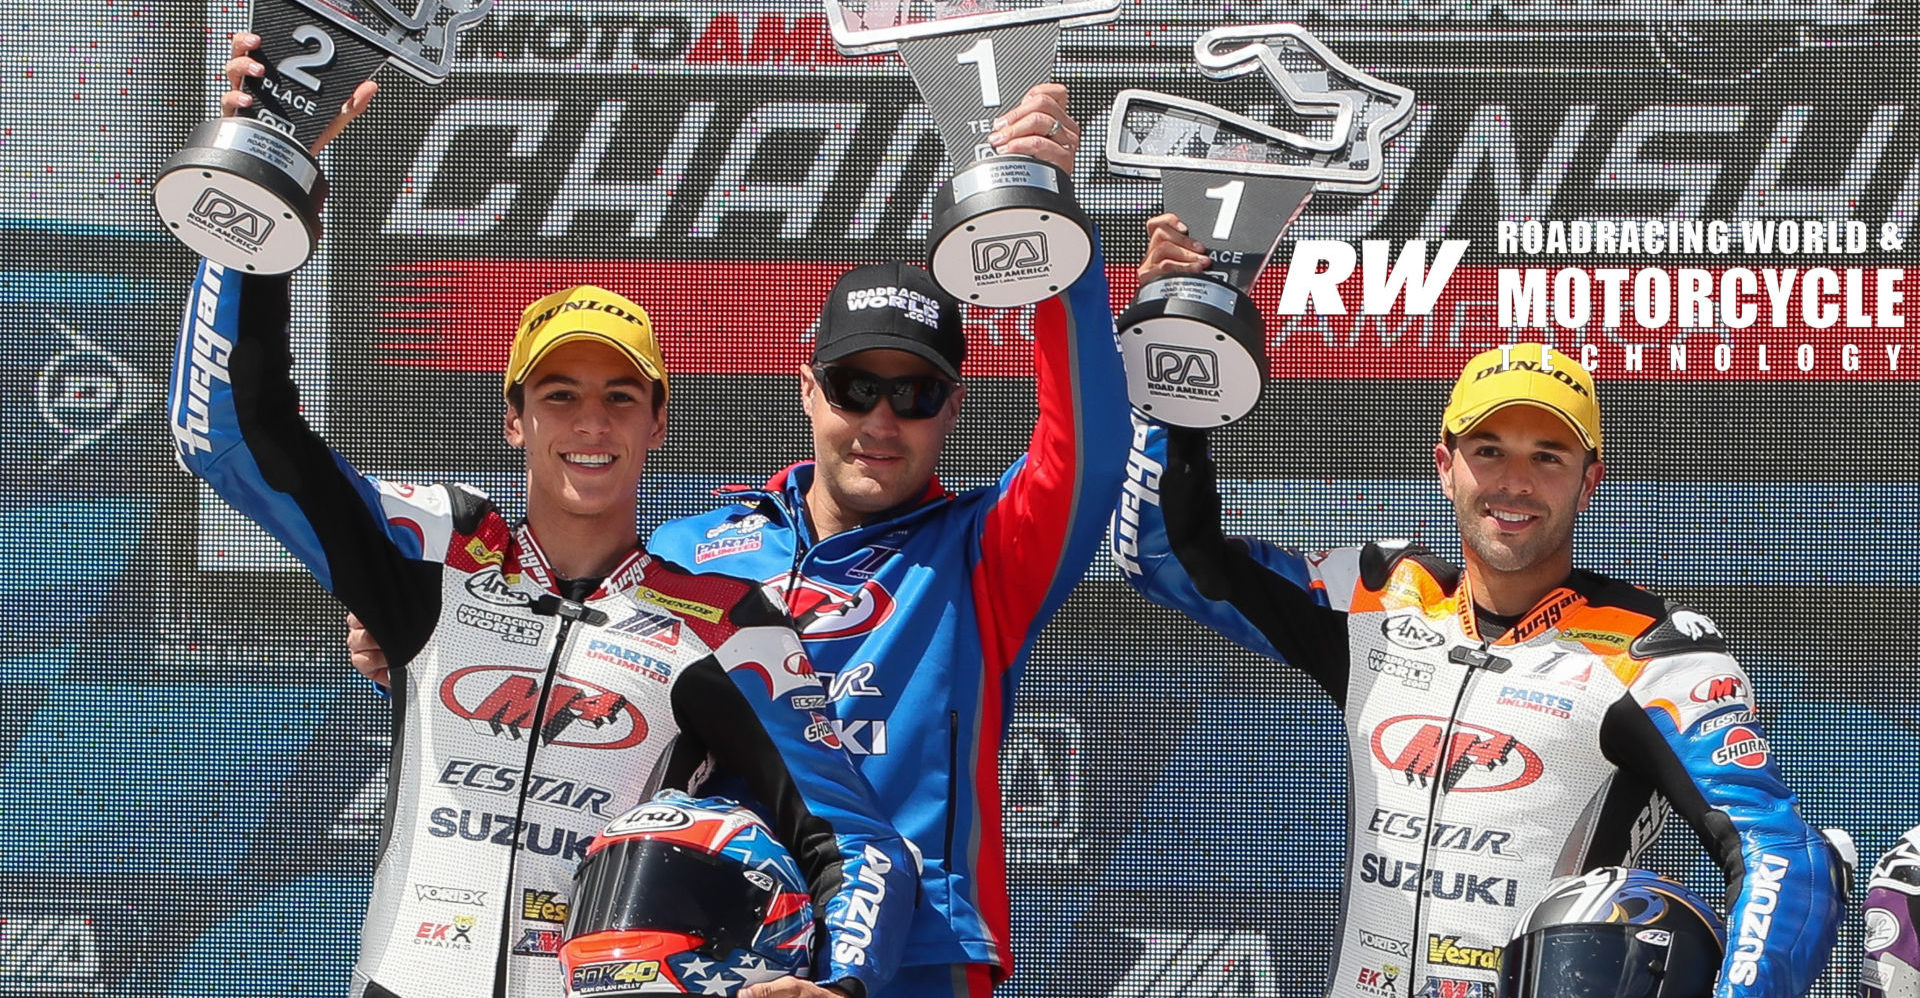 Chris Ulrich (center) on the podium with his riders Bobby Fong (right) and Sean Dylan Kelly (left), after Fong won and Kelly finished second in MotoAmerica Supersport Race Two at Road America in 2019. Photo by Brian J. Nelson.